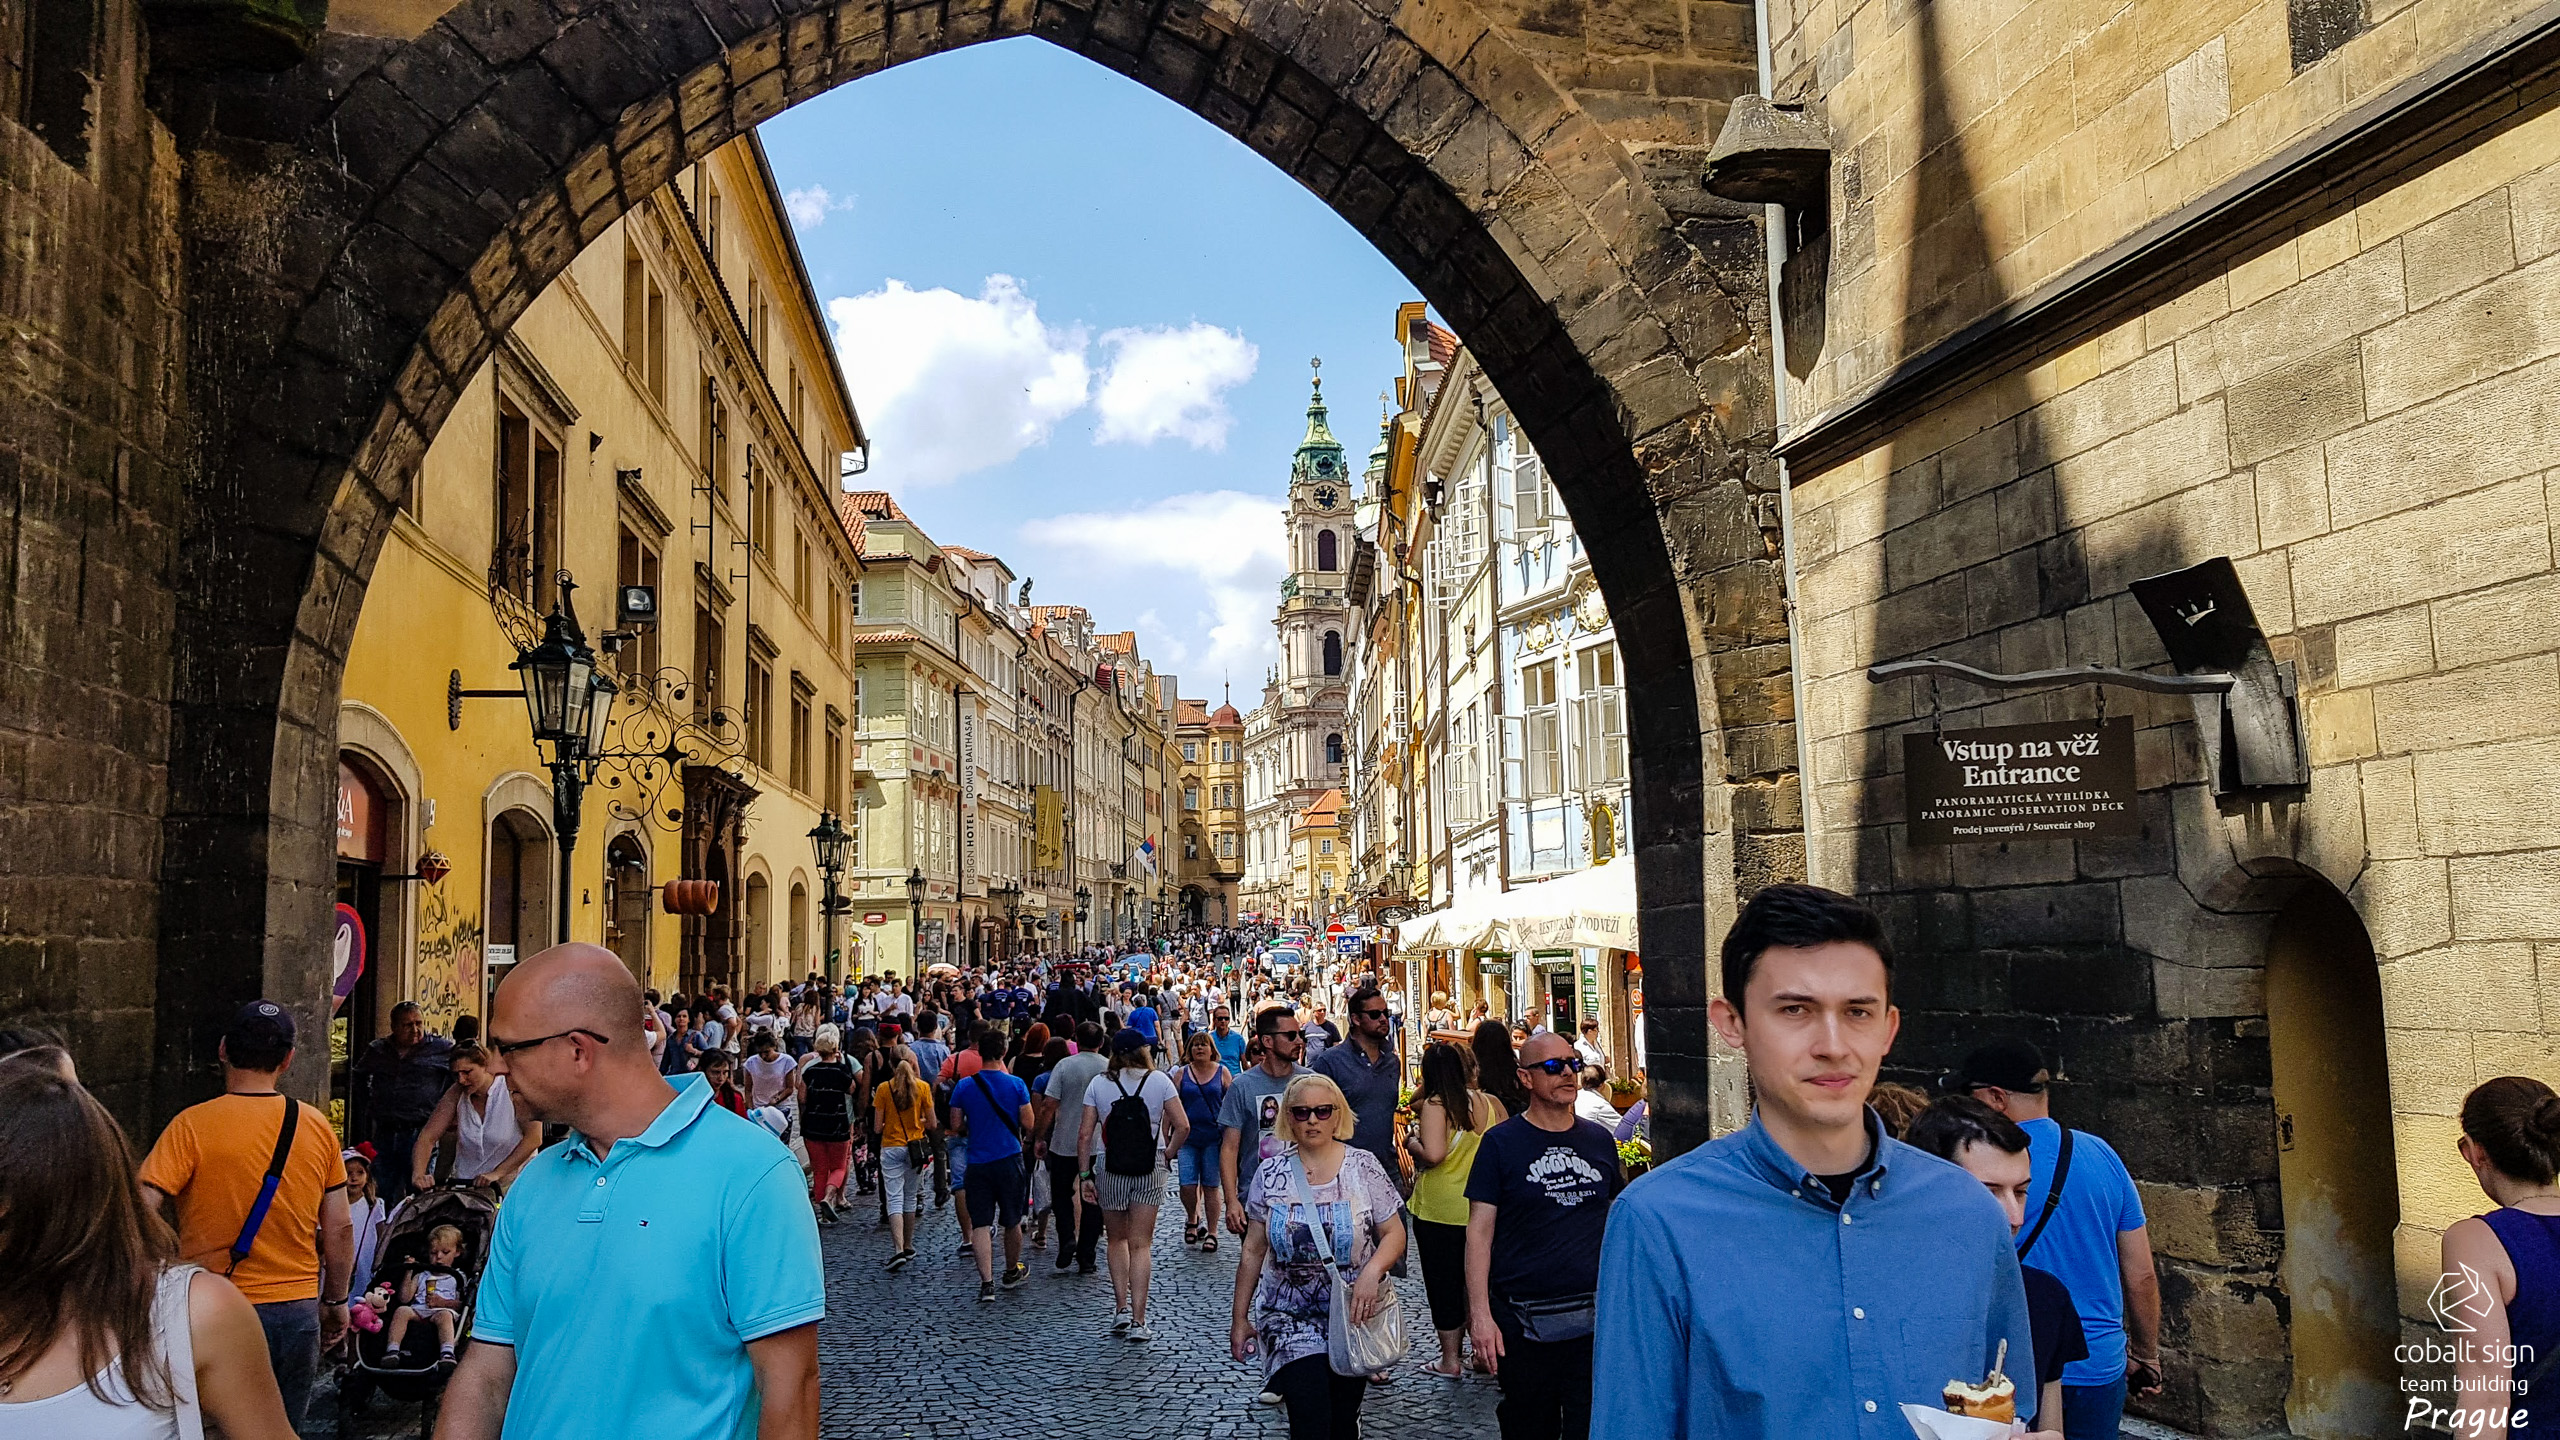 Cobalt Sign Team building Prague 2018 - Sightseeing & mDevCamp (20 of 59)